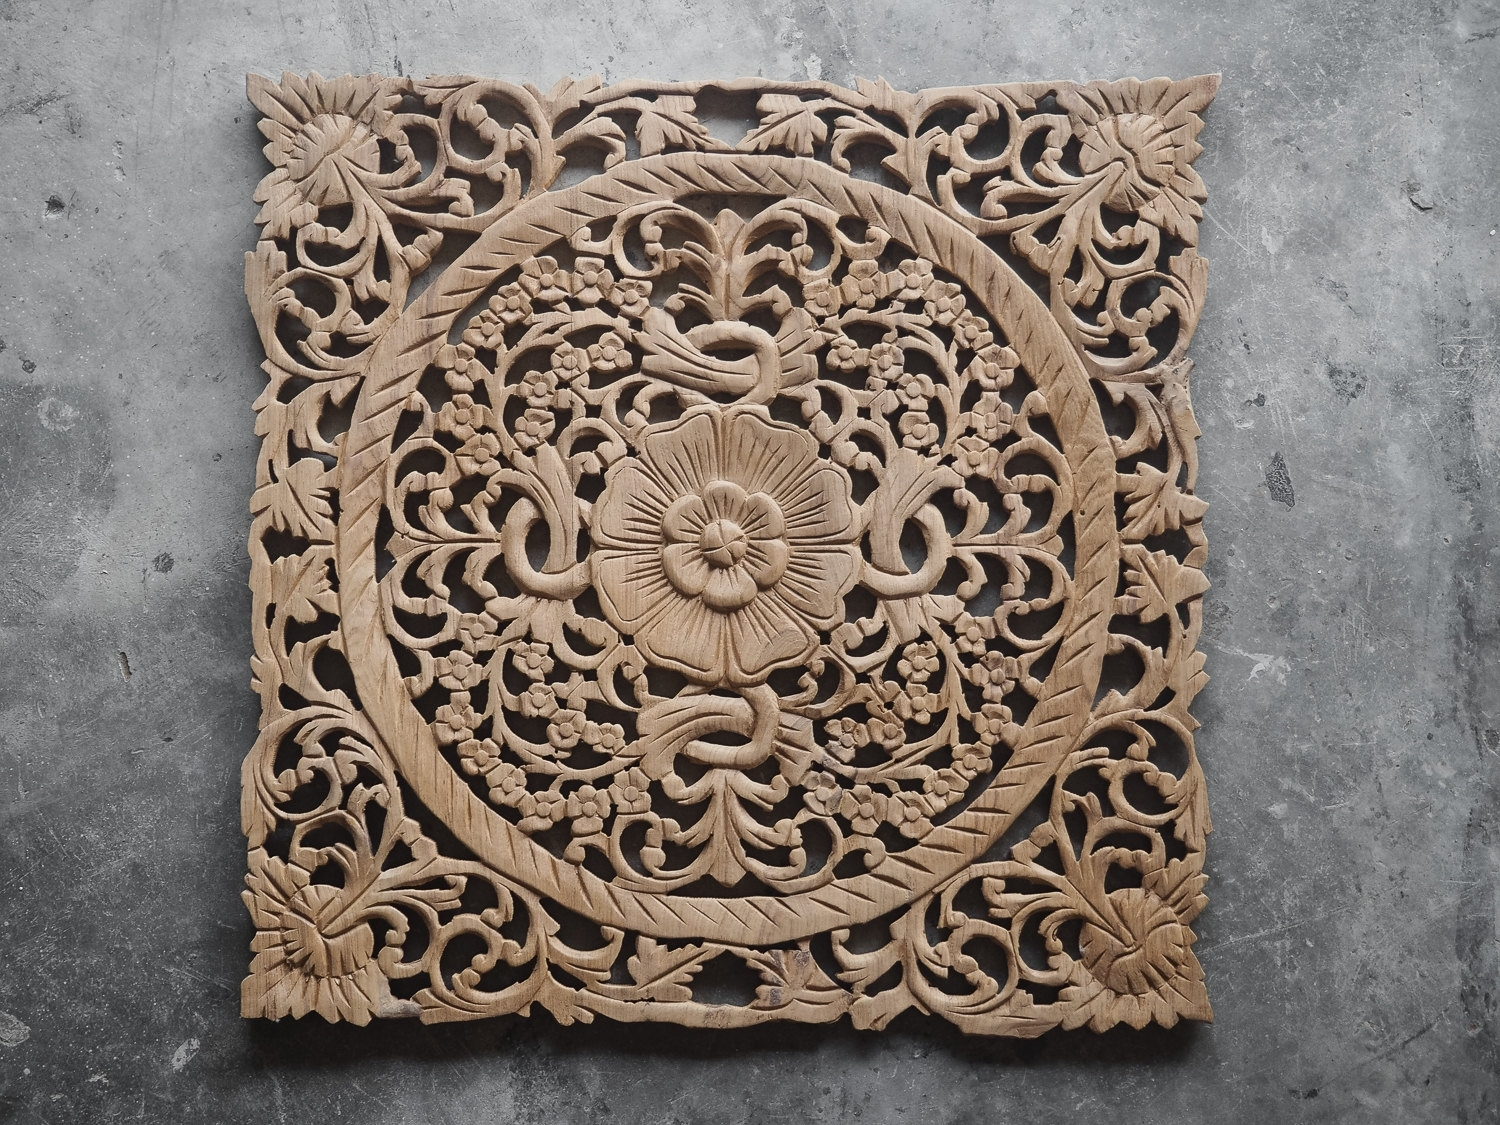 Buy Lotus Wood Carving Plaque Oriental Decor Online Intended For Newest Carved Wood Wall Art (View 1 of 15)